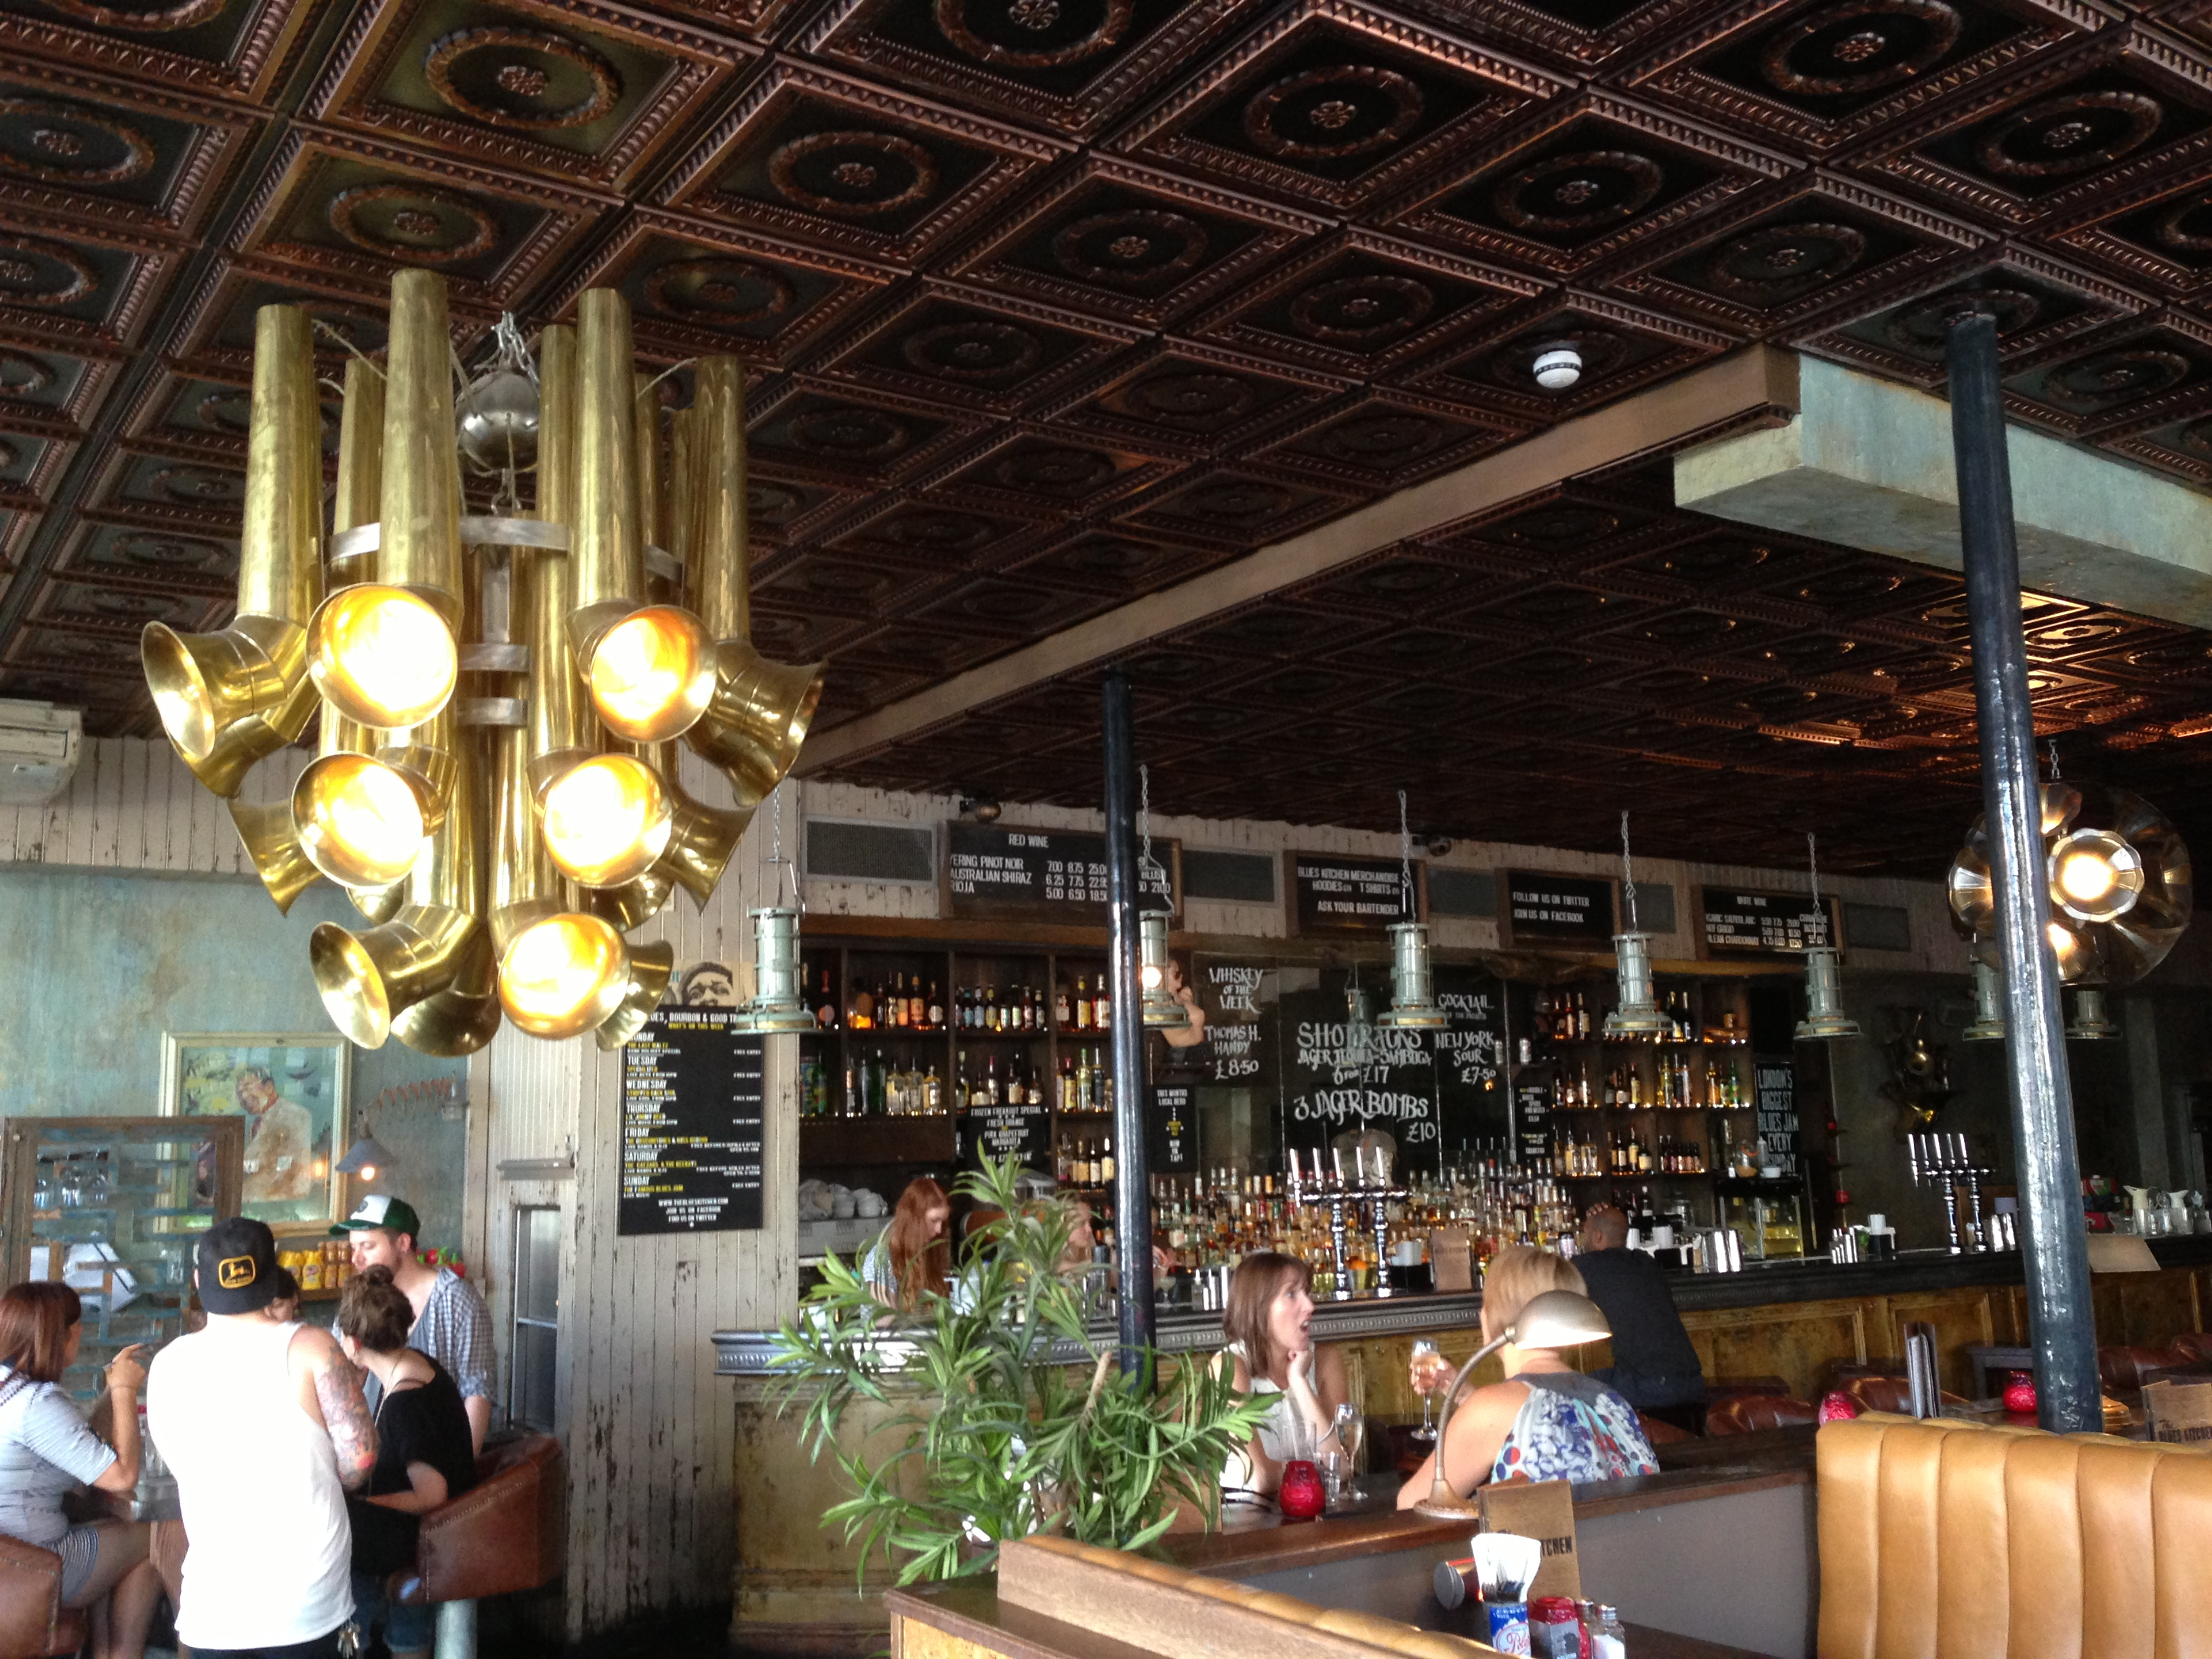 Look at Our Decorative Ceiling Tiles in London!